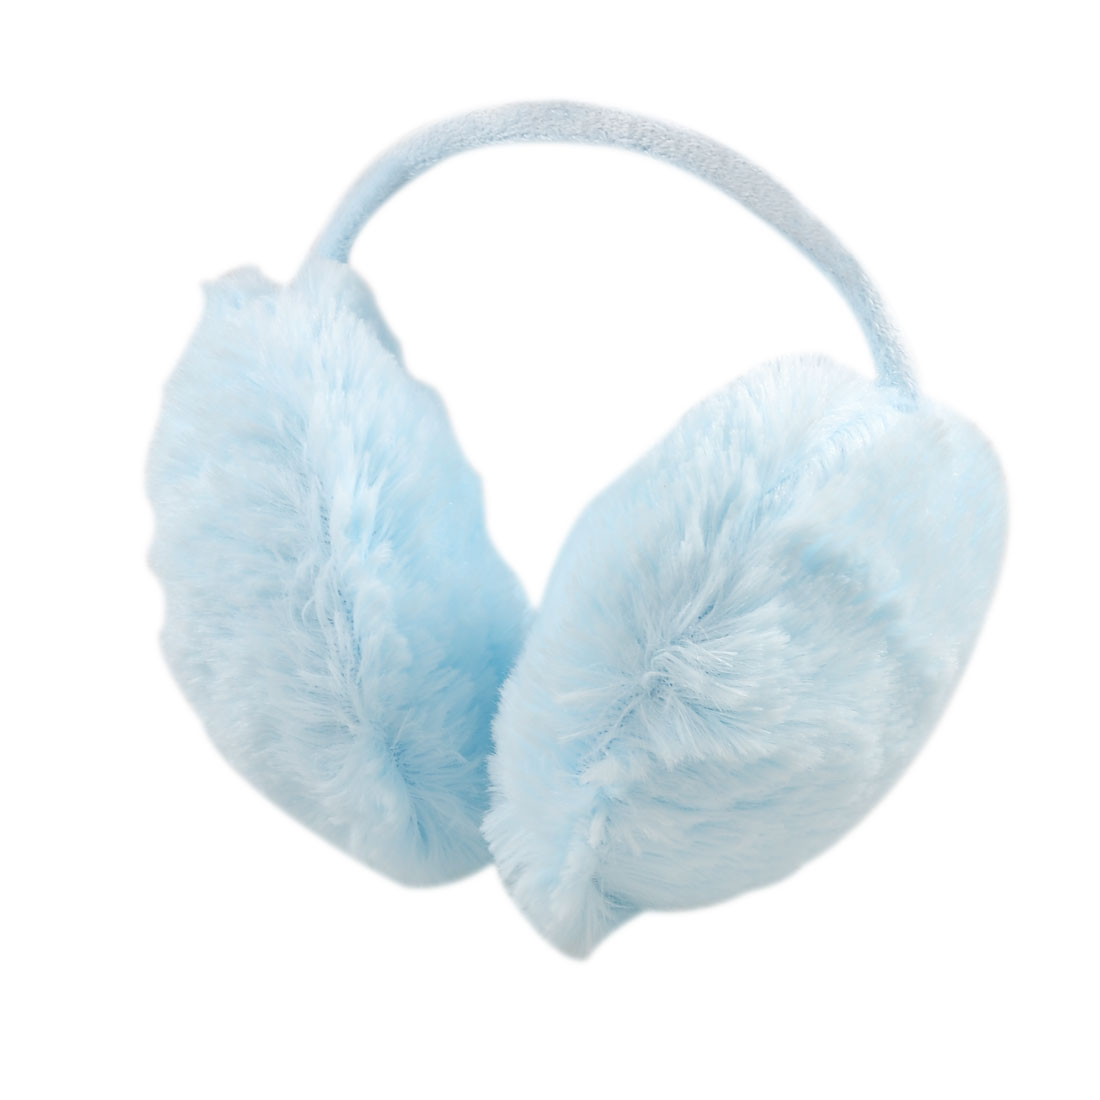 Ladies Winter Headwear Plush Ear Pad Back Earmuffs Light Blue